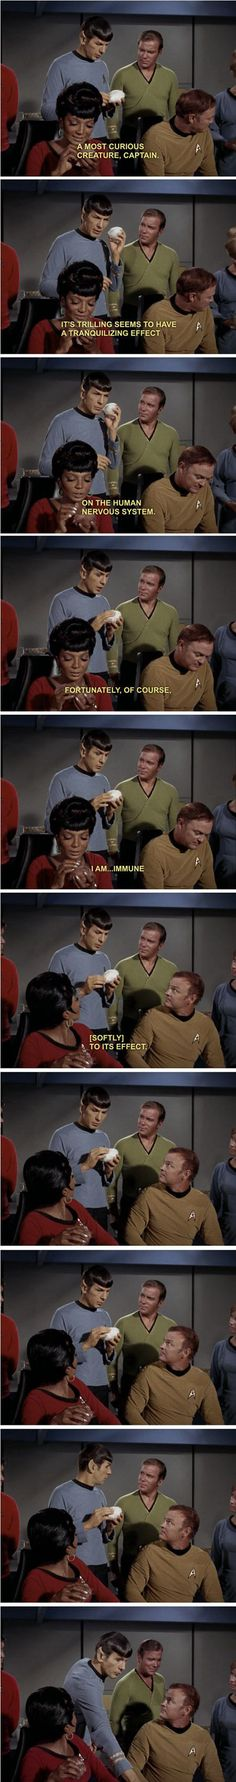 "Spock gets temporarily caught up with the feels. And everyone is like, ""Hehe! Mr. Spock..."""